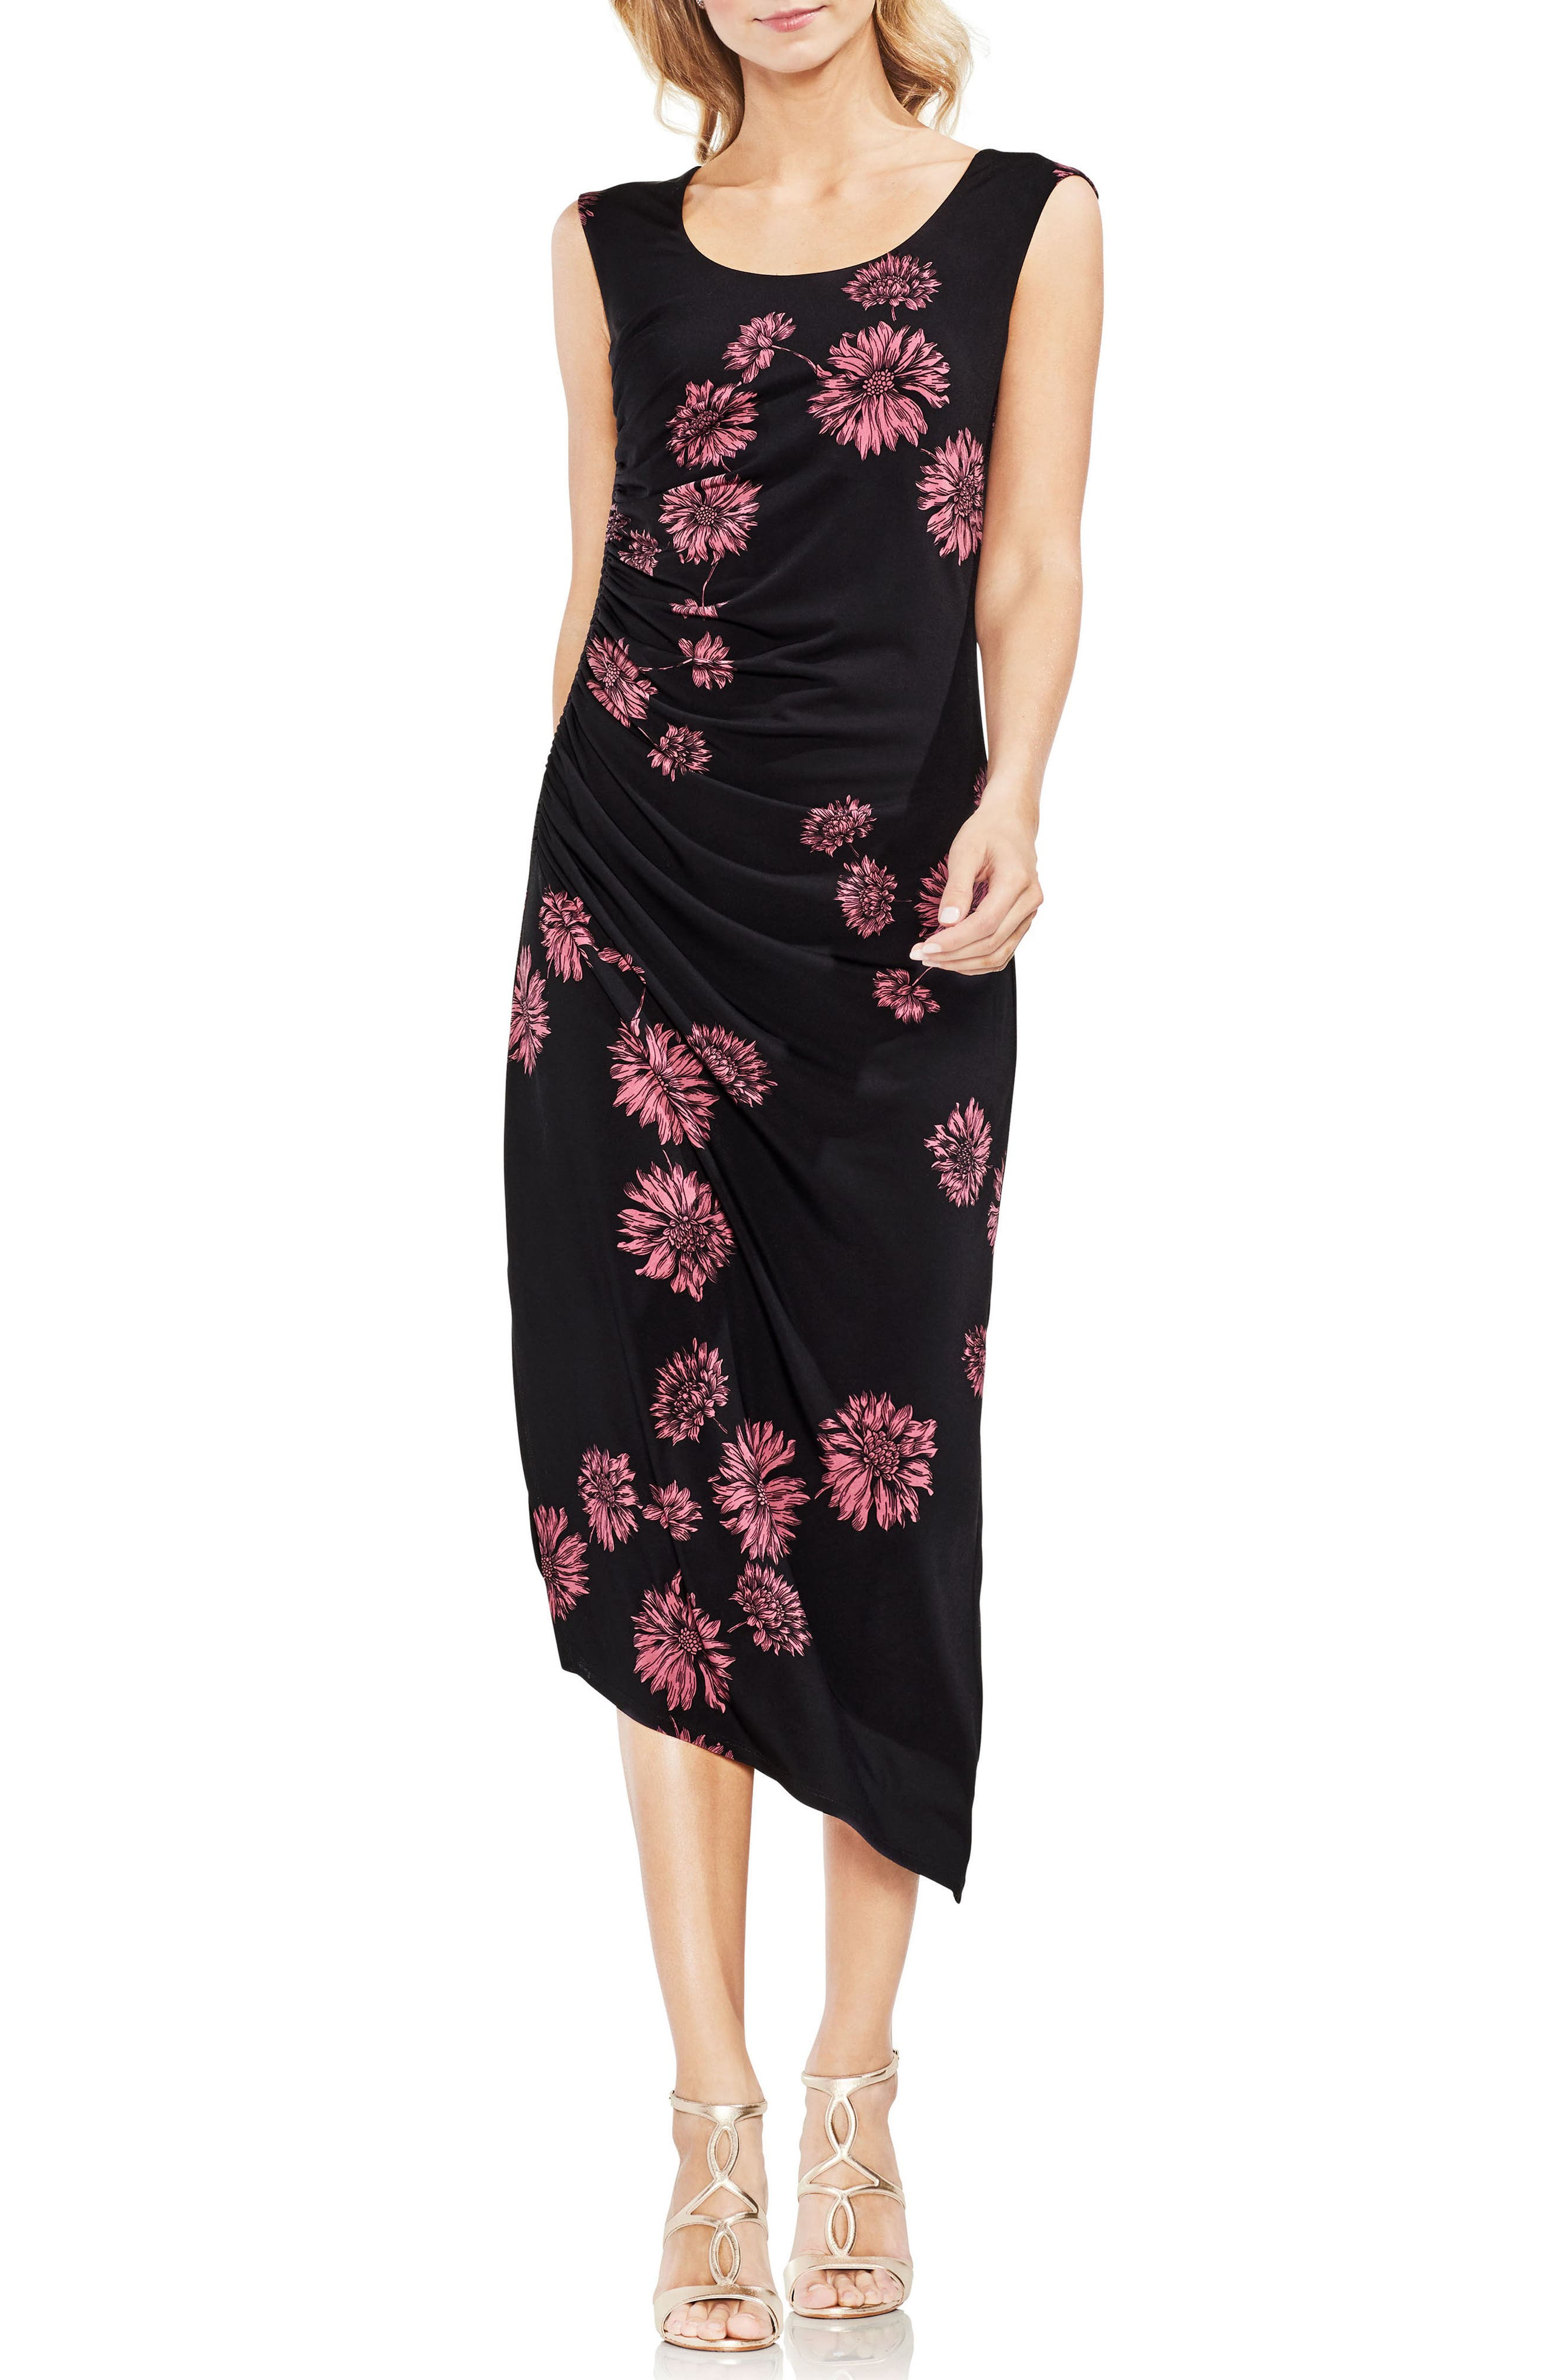 VINCE CAMUTO,                             Chateau Floral Side Ruched Body-Con Dress,                             Main thumbnail 1, color,                             001